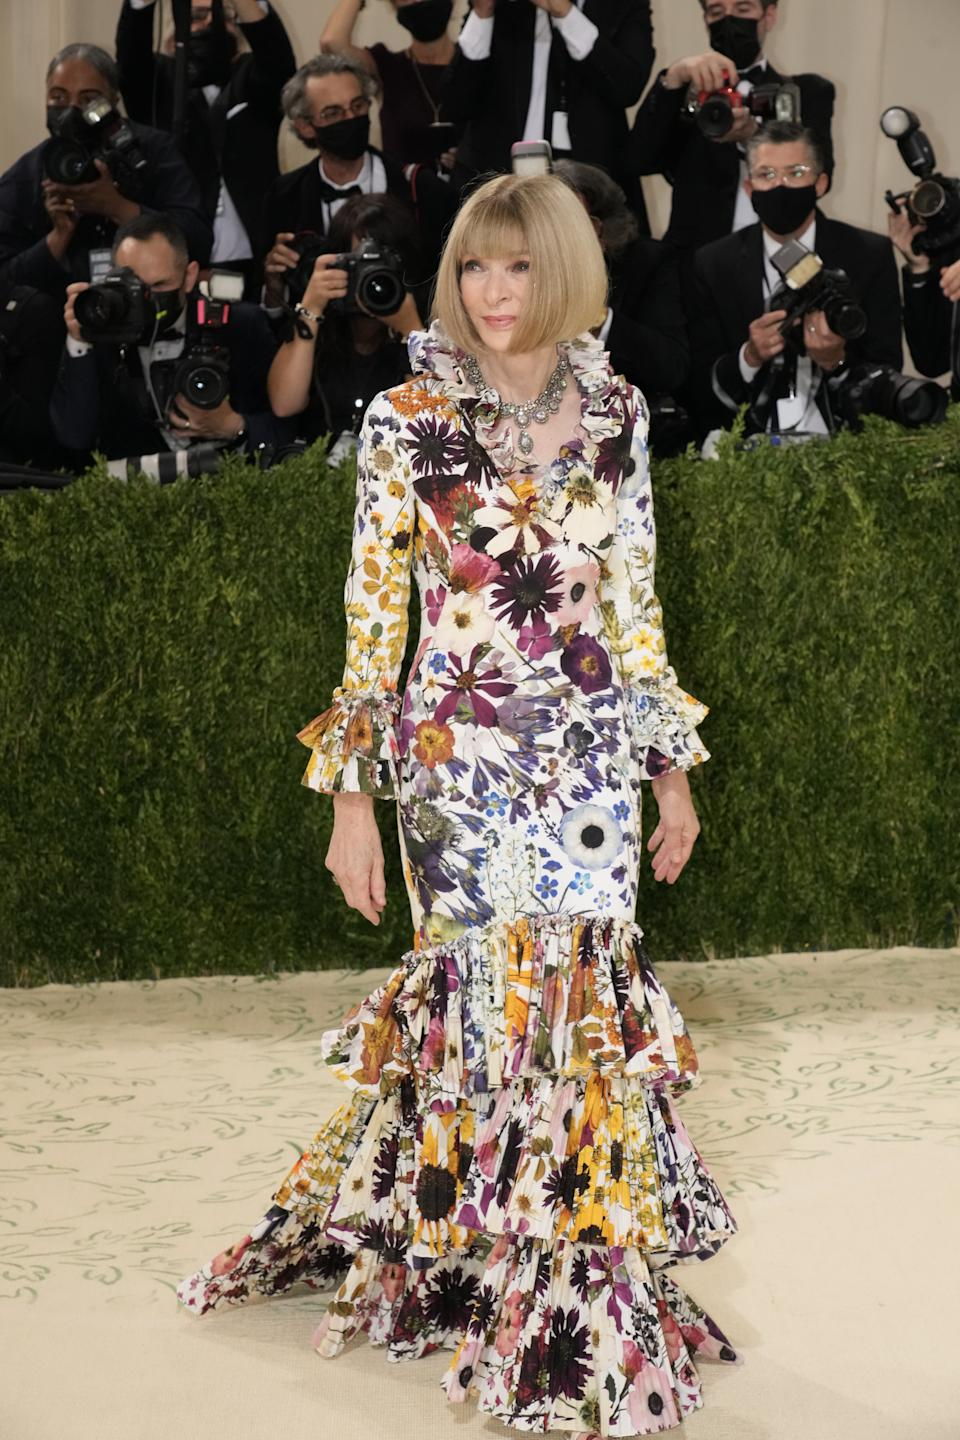 Anna Wintour at the 2021 Met Gala